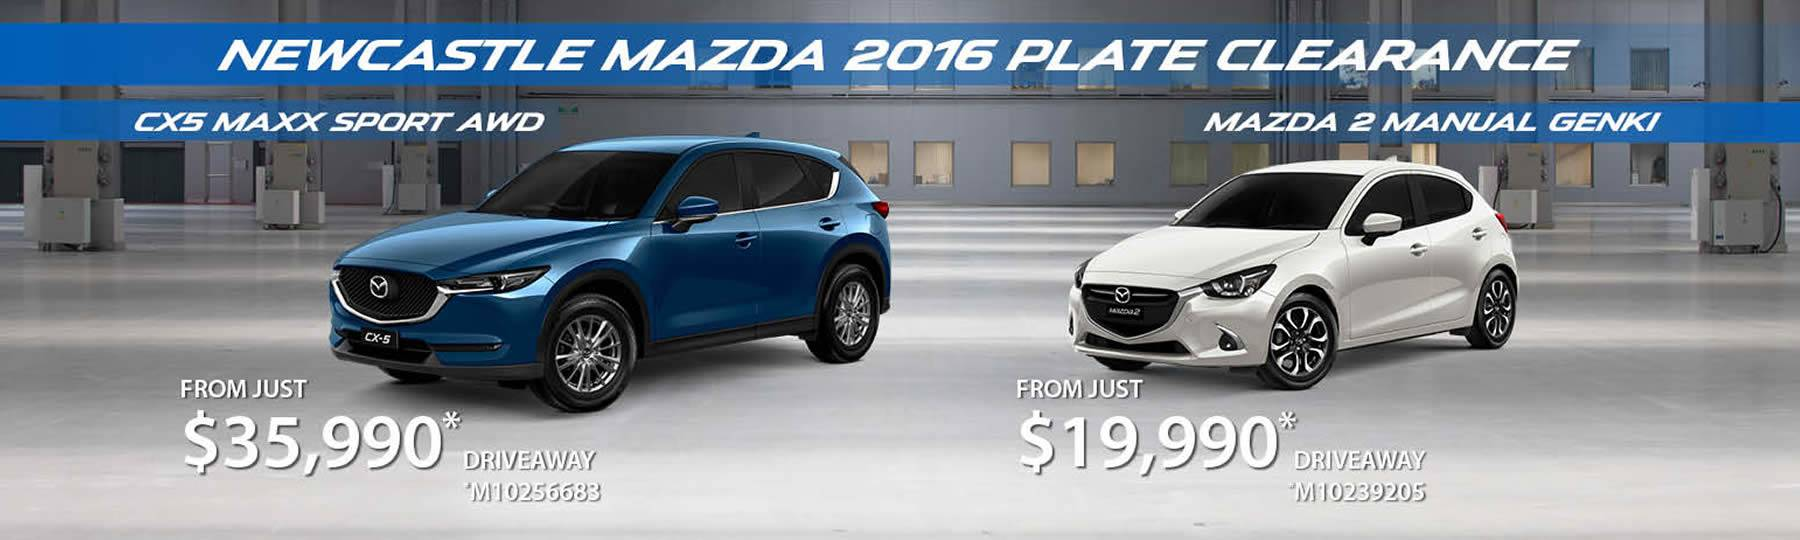 Newcastle Mazda Click Here for Special Offers